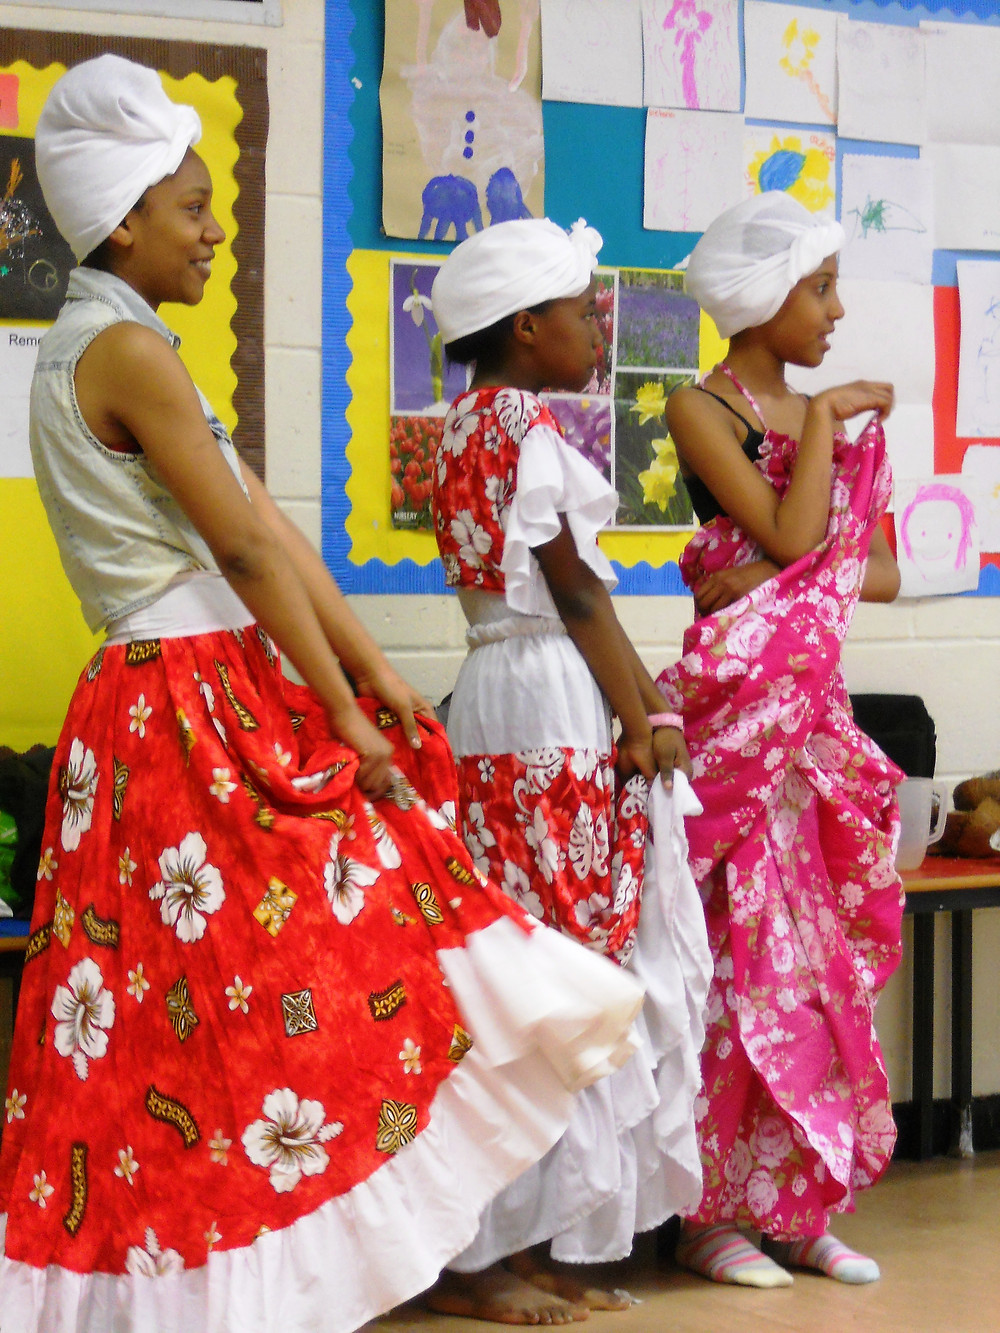 Traditional Chagossian dancing from a previous cultural event in Crawley earlier this year